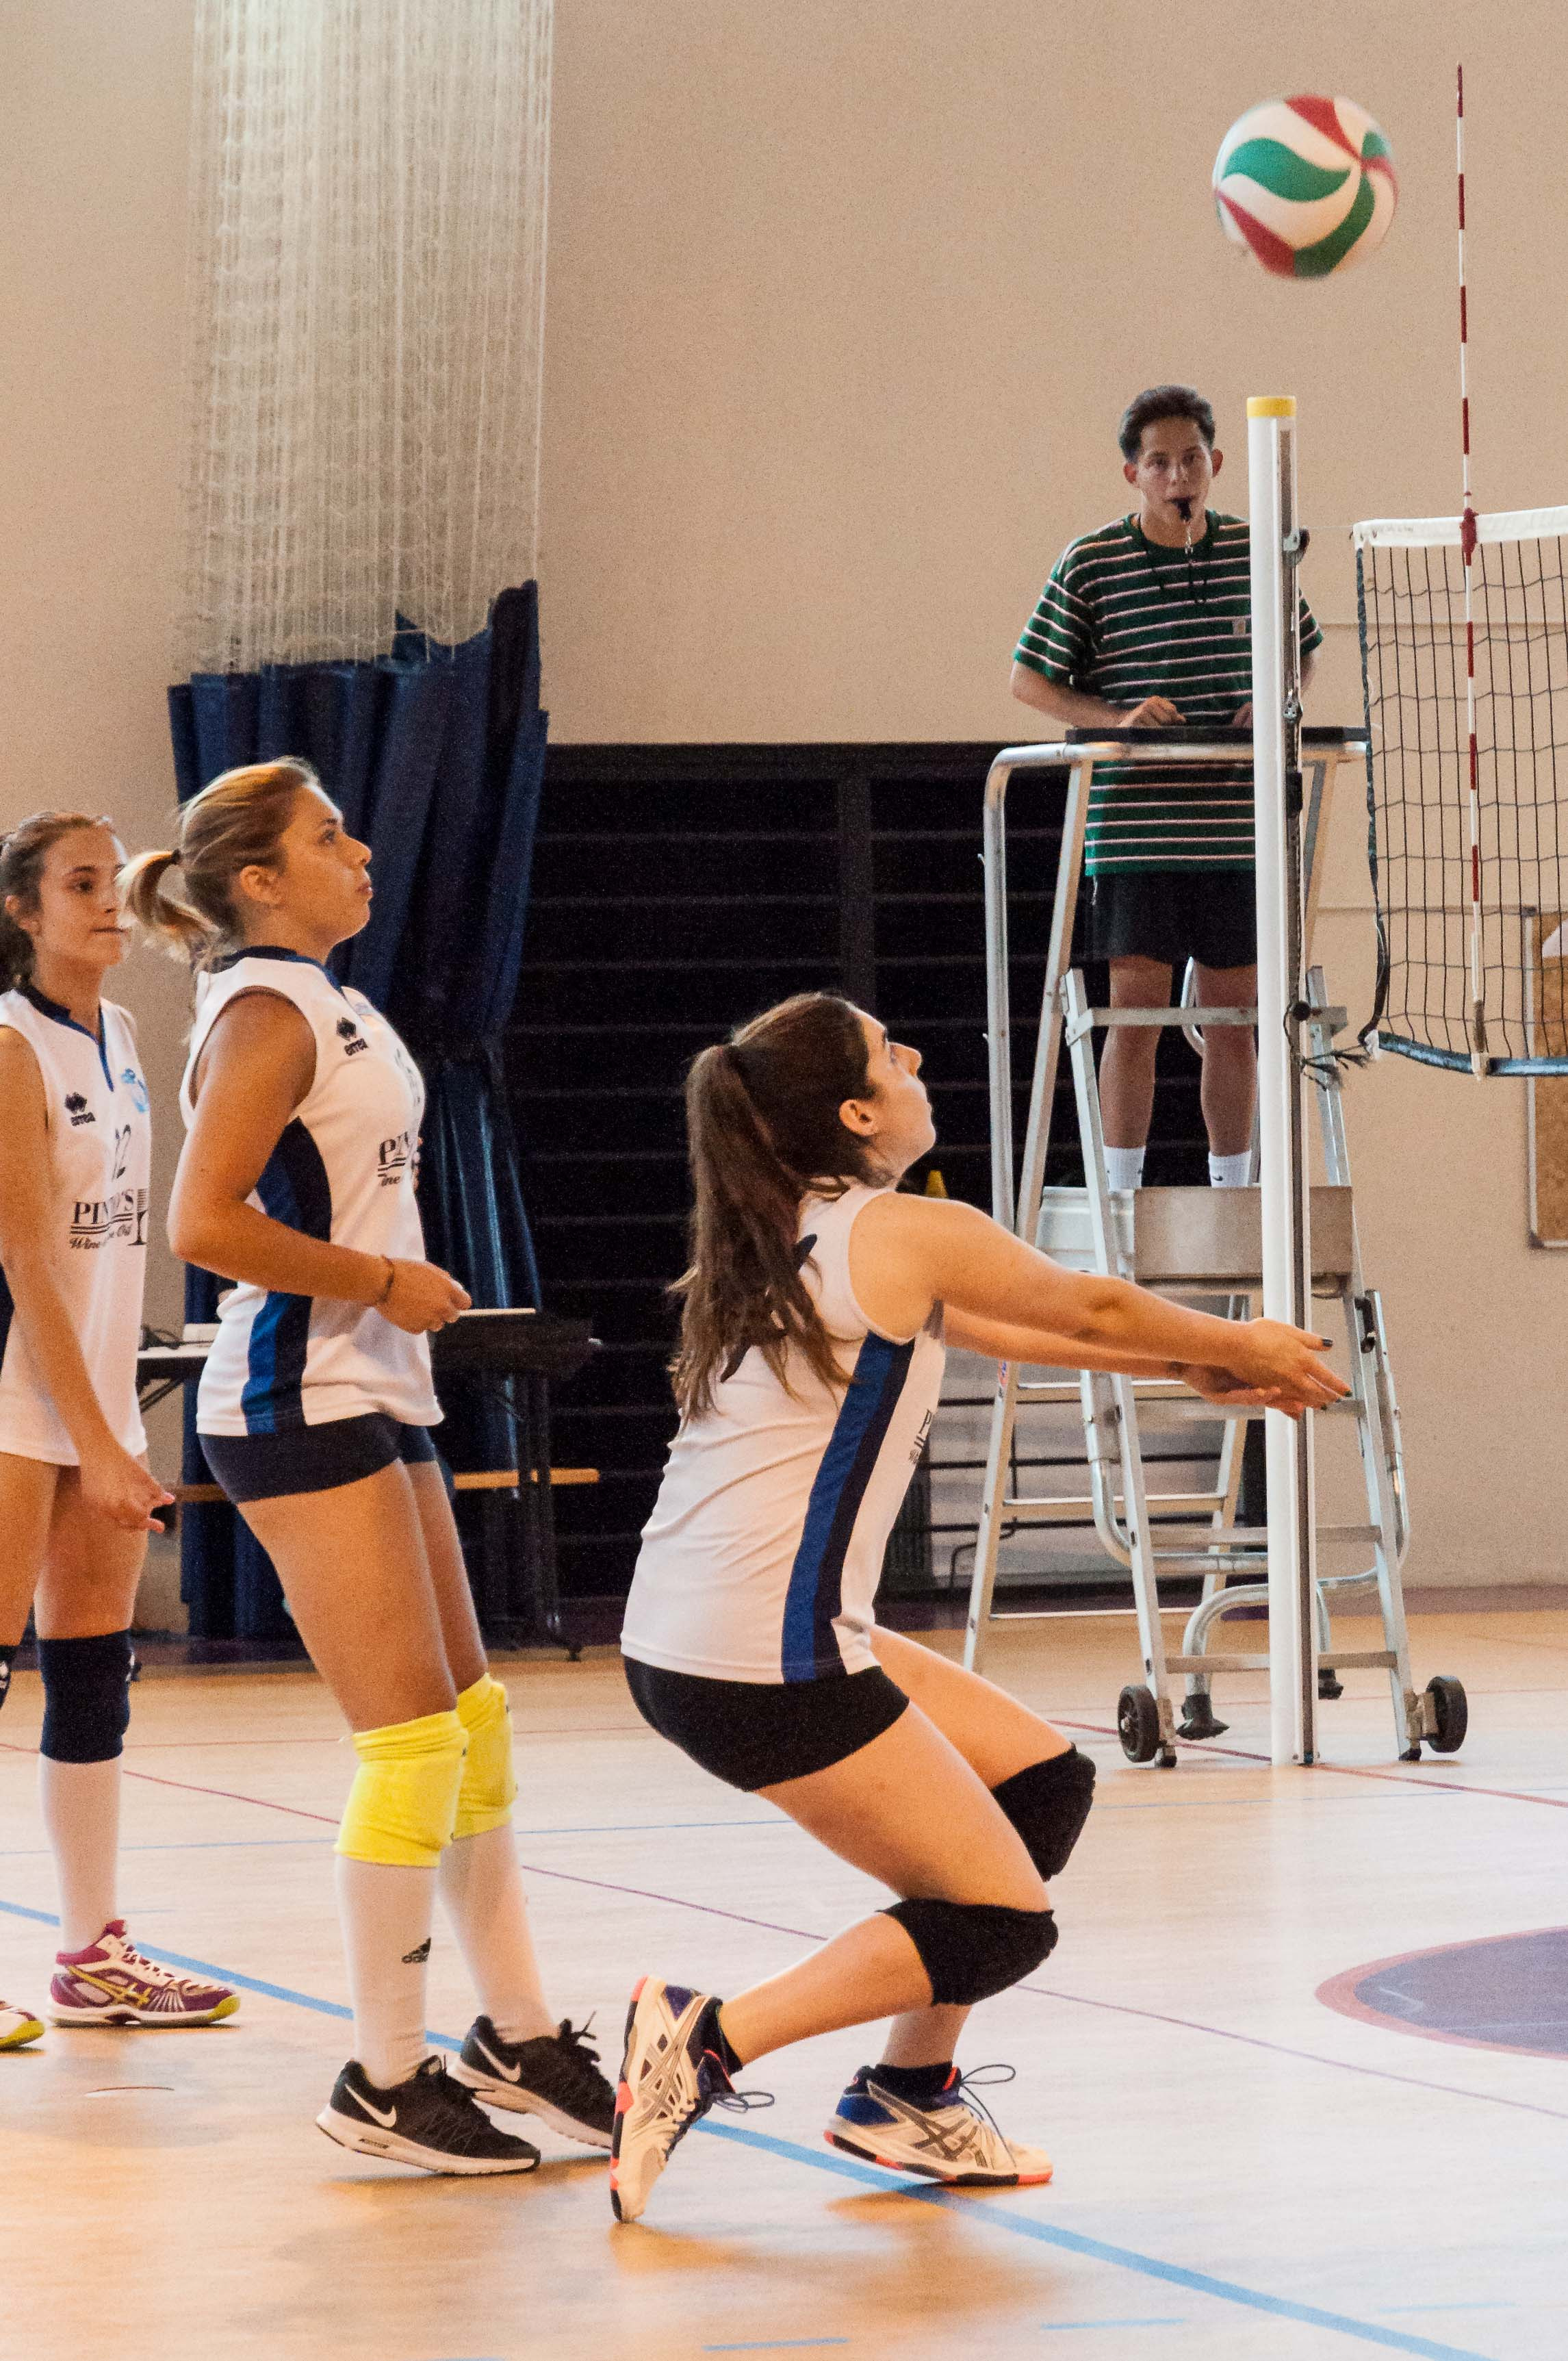 08_Volley_07_I. DURAND - 13